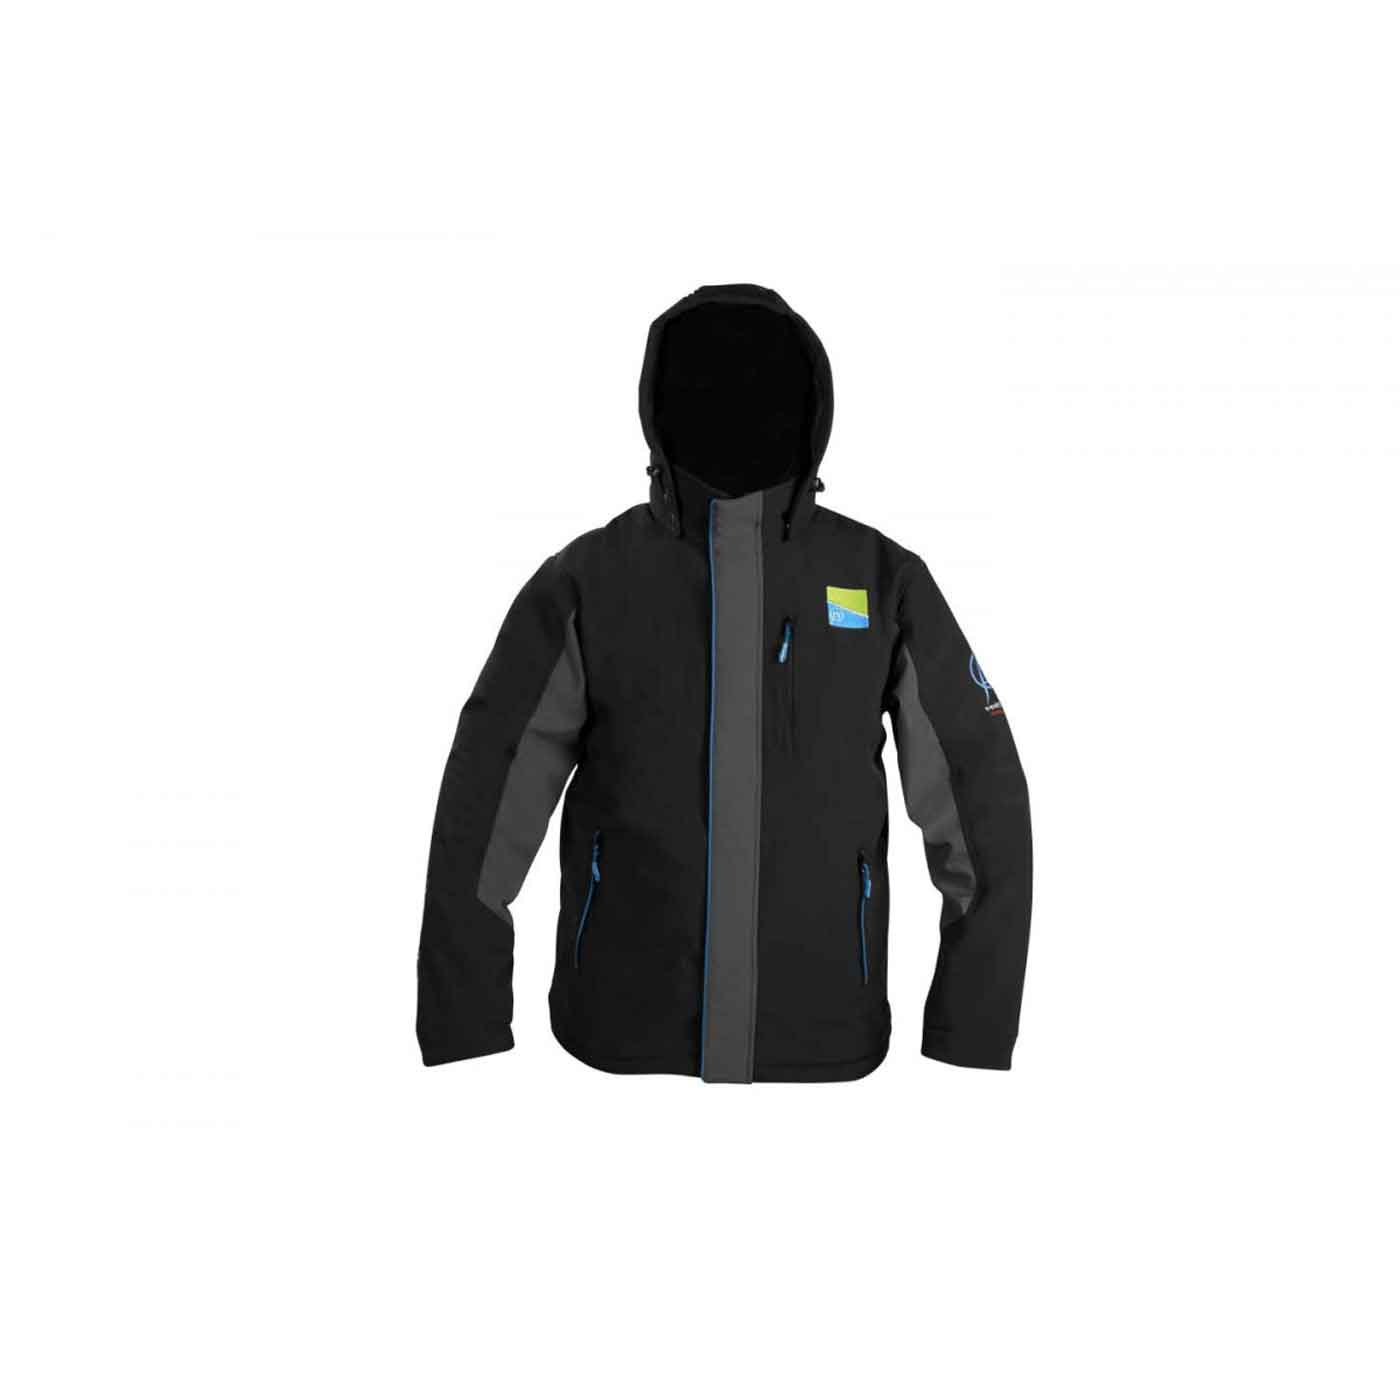 Preston Innovations Soft Shell Hooded Fleece Jacket